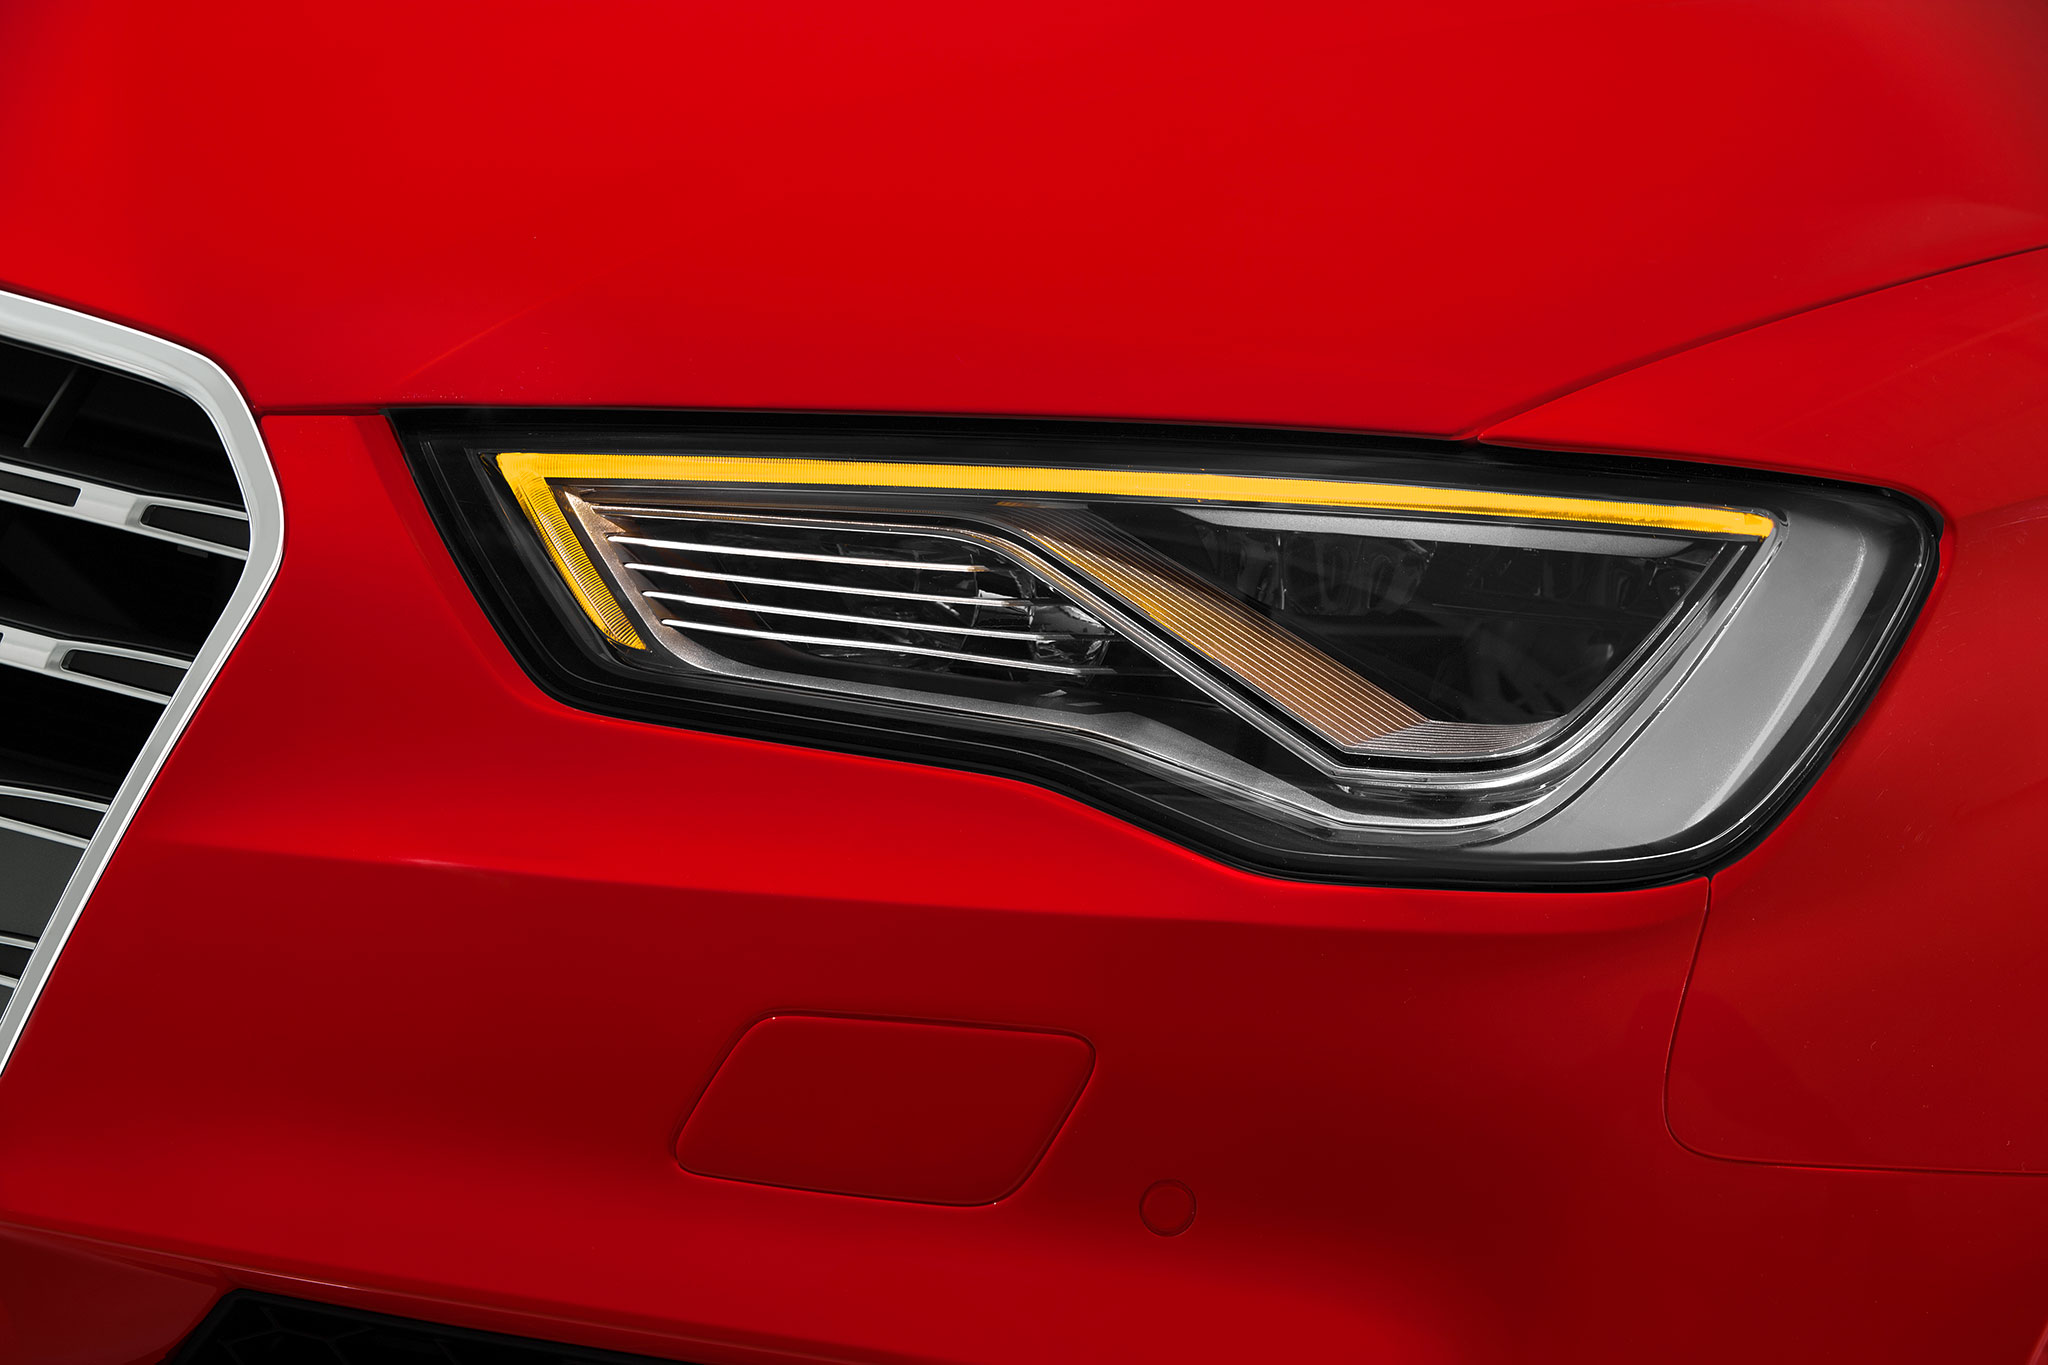 2015 Audi A3 TDI, A3 Cabrio, and S3 Priced